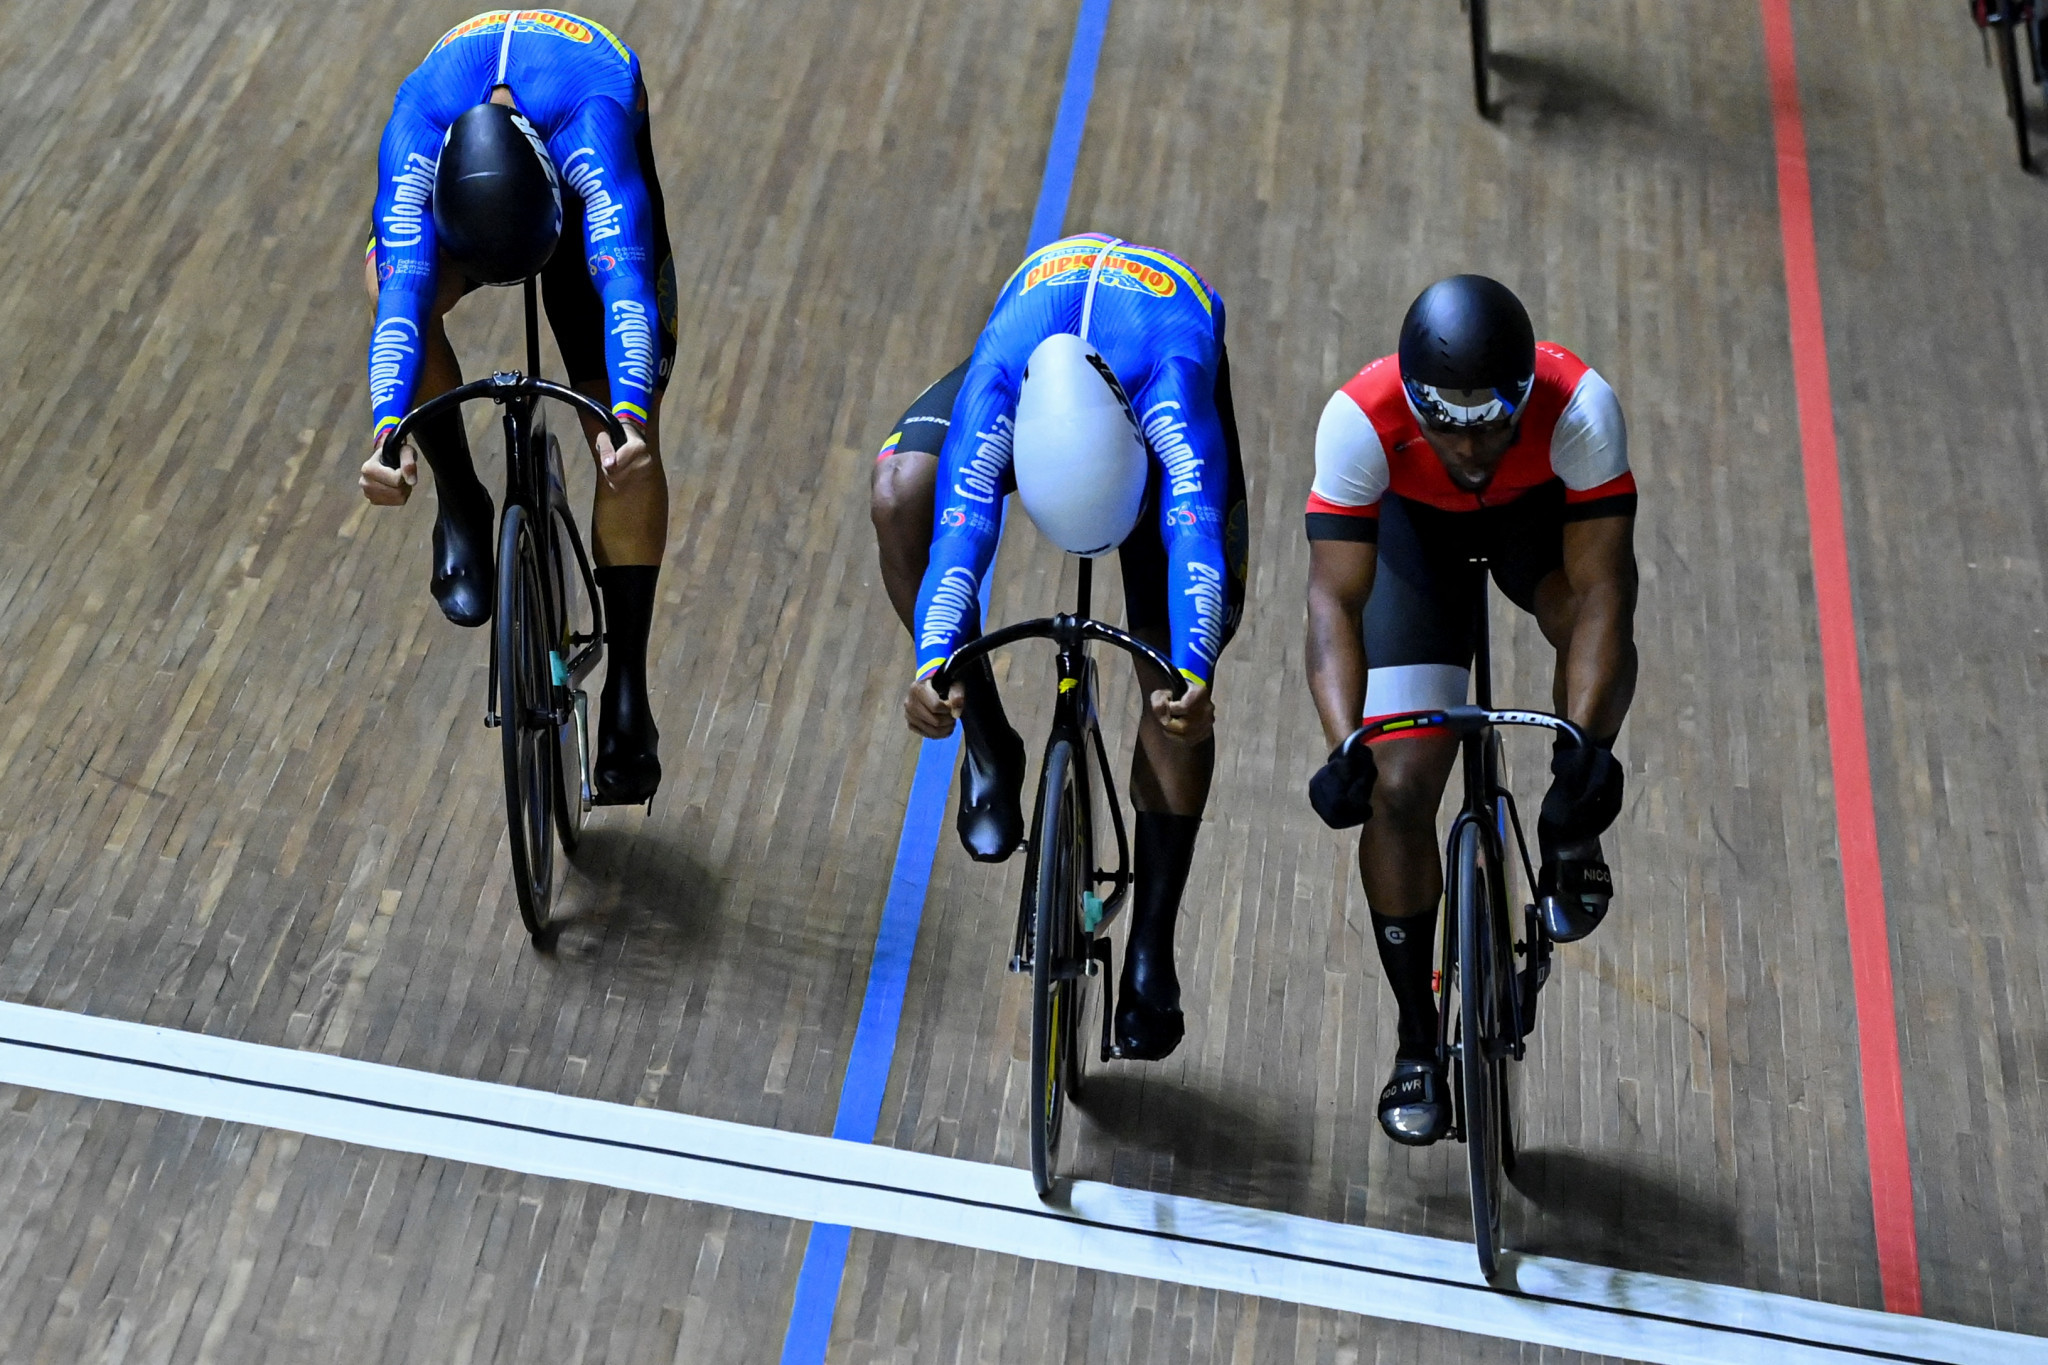 Nicholas Paul, right, pipped two Colombian riders to victory in the men's keirin to win his second gold in Cali ©Getty Images